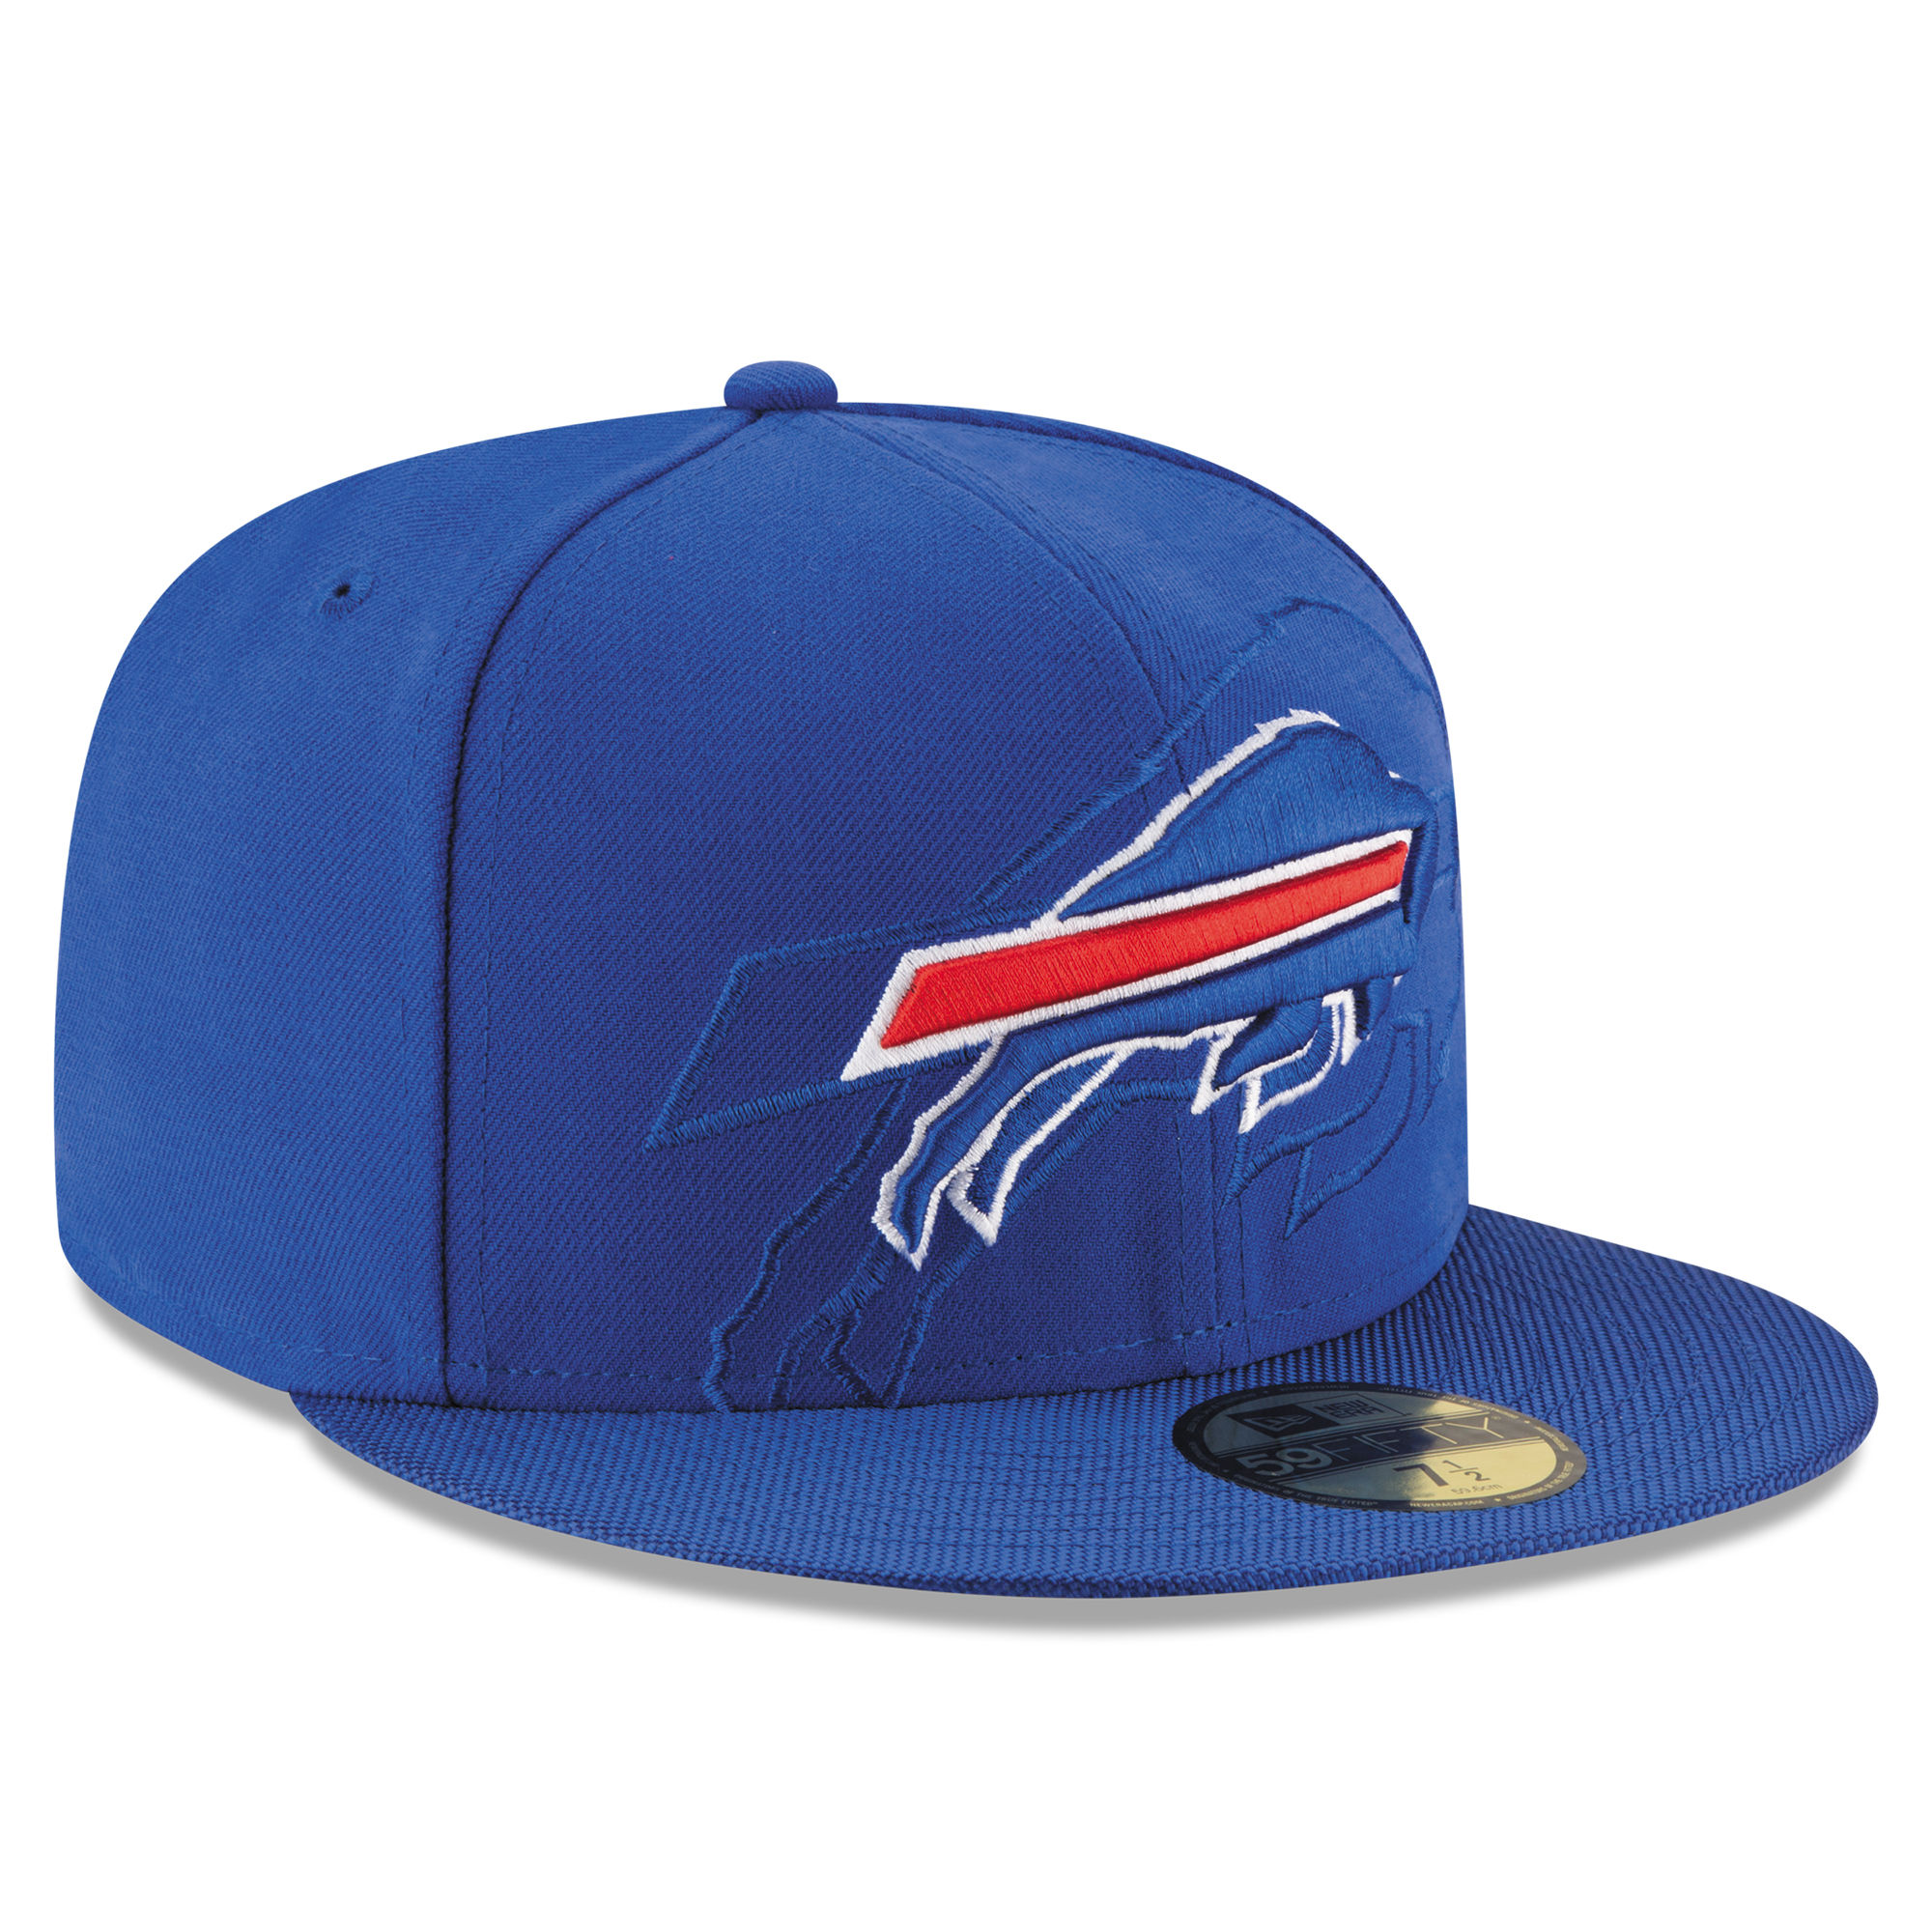 New Era Buffalo Bills Royal 2016 Sideline Official 59FIFTY Fitted Hat f6ed615af